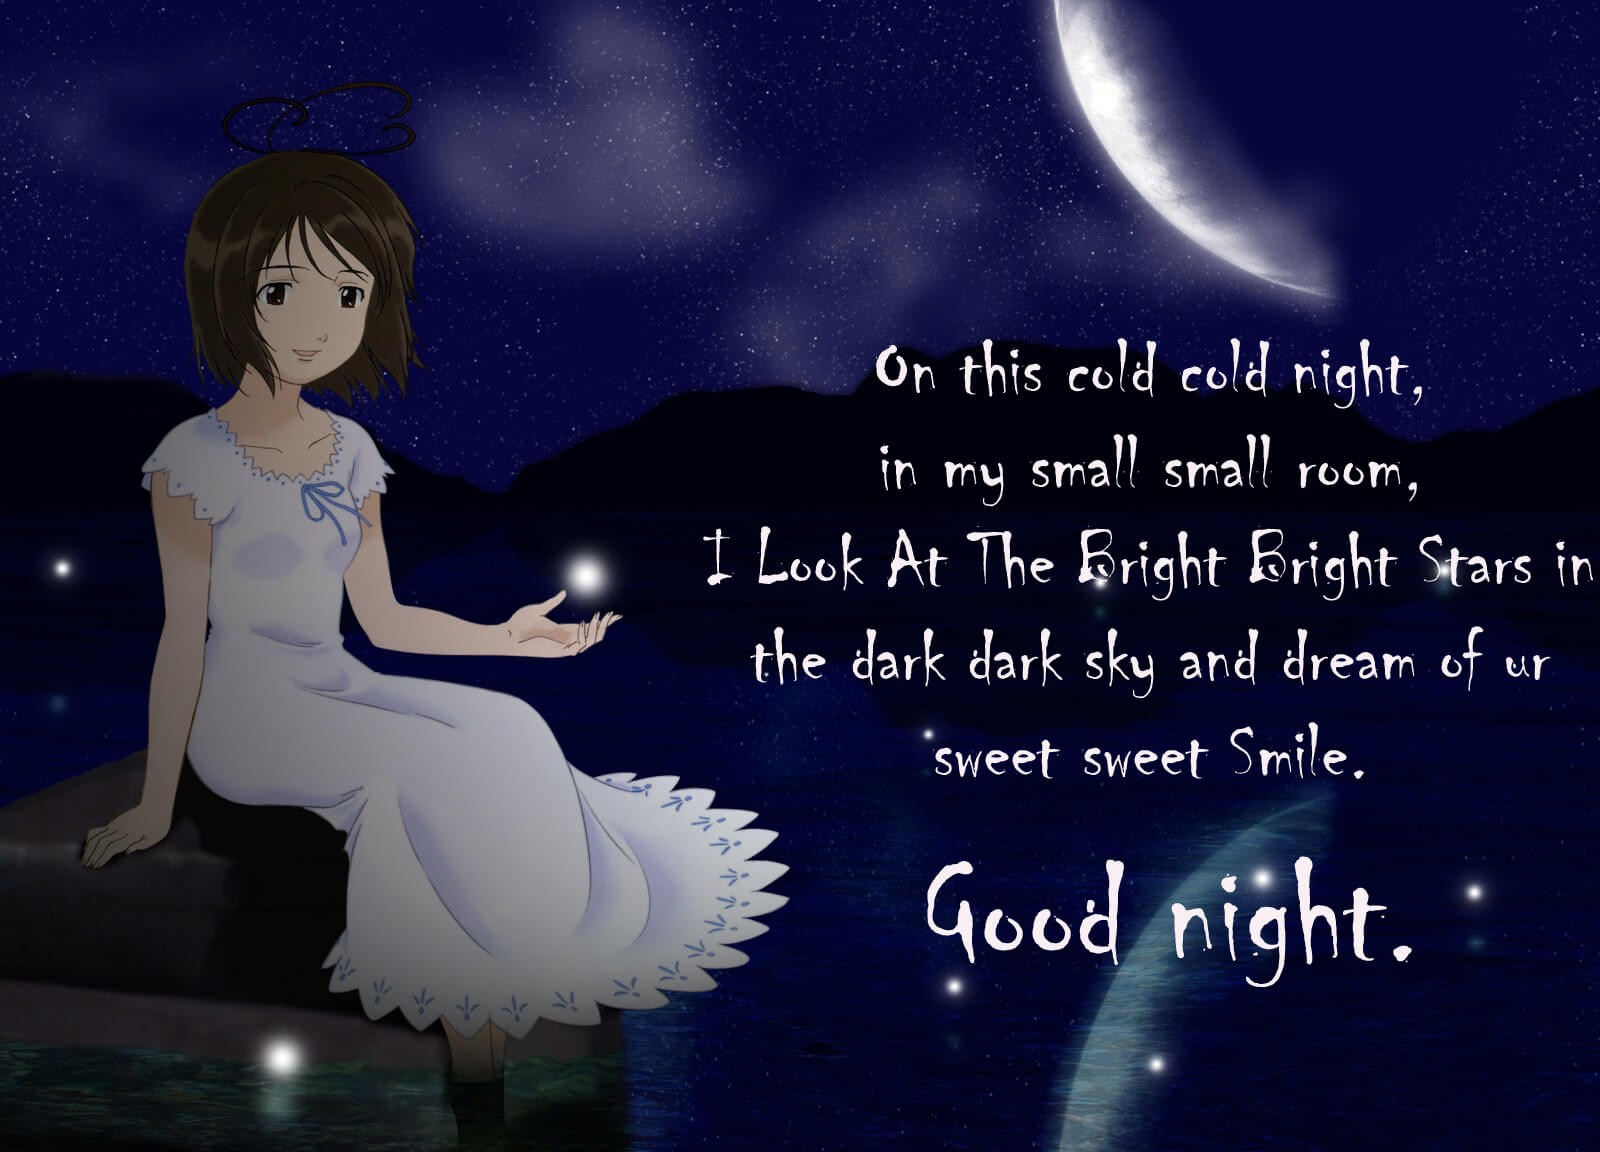 good night as a greeting